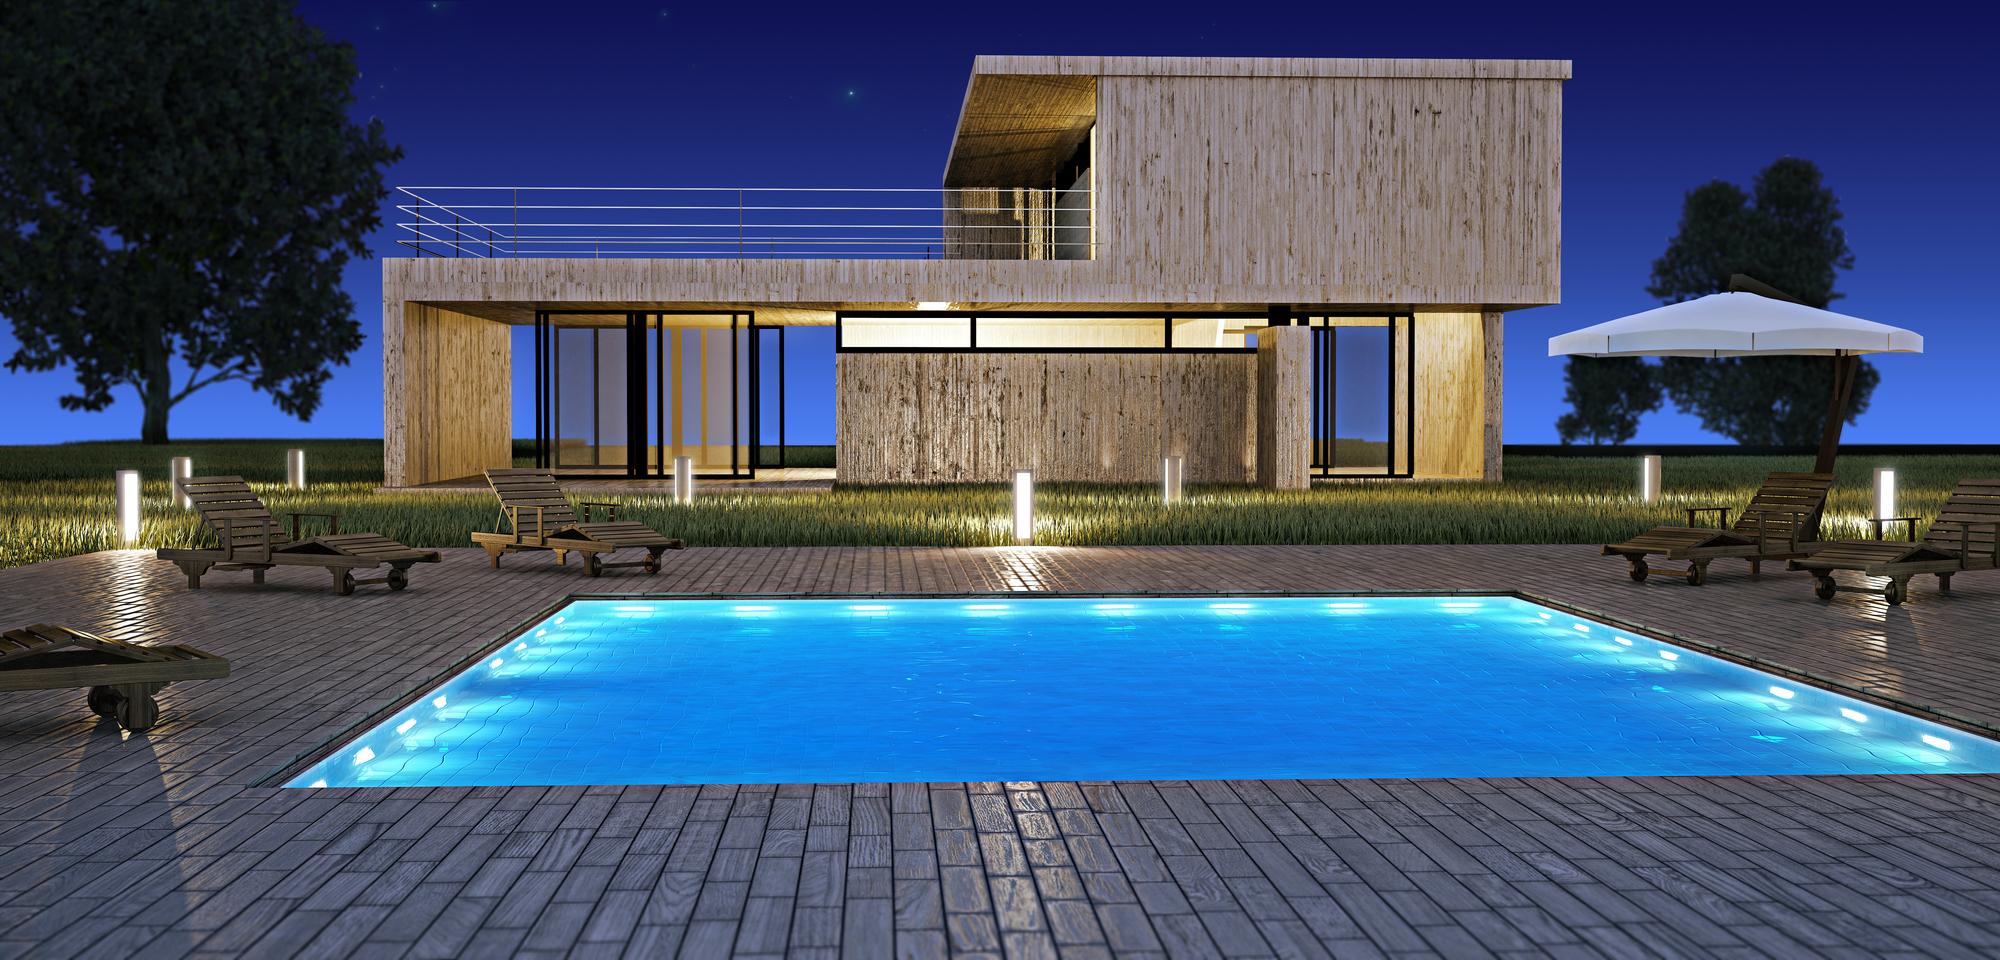 Brisbane Pool Design - Malibu Pools